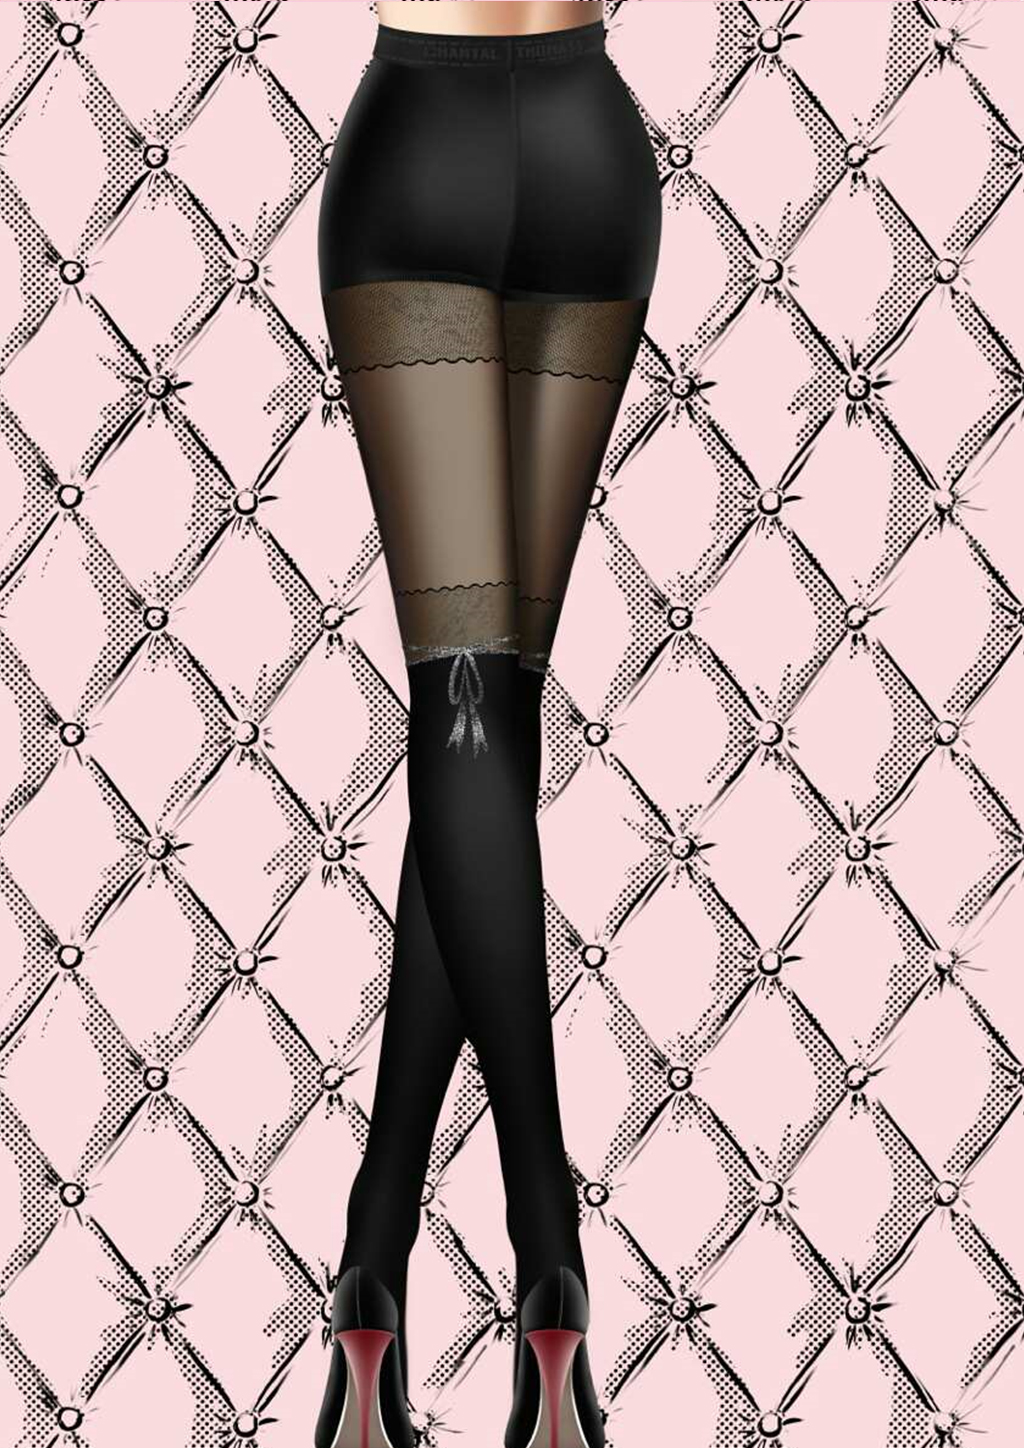 Chantal Thomass Buckingham Palace Tights